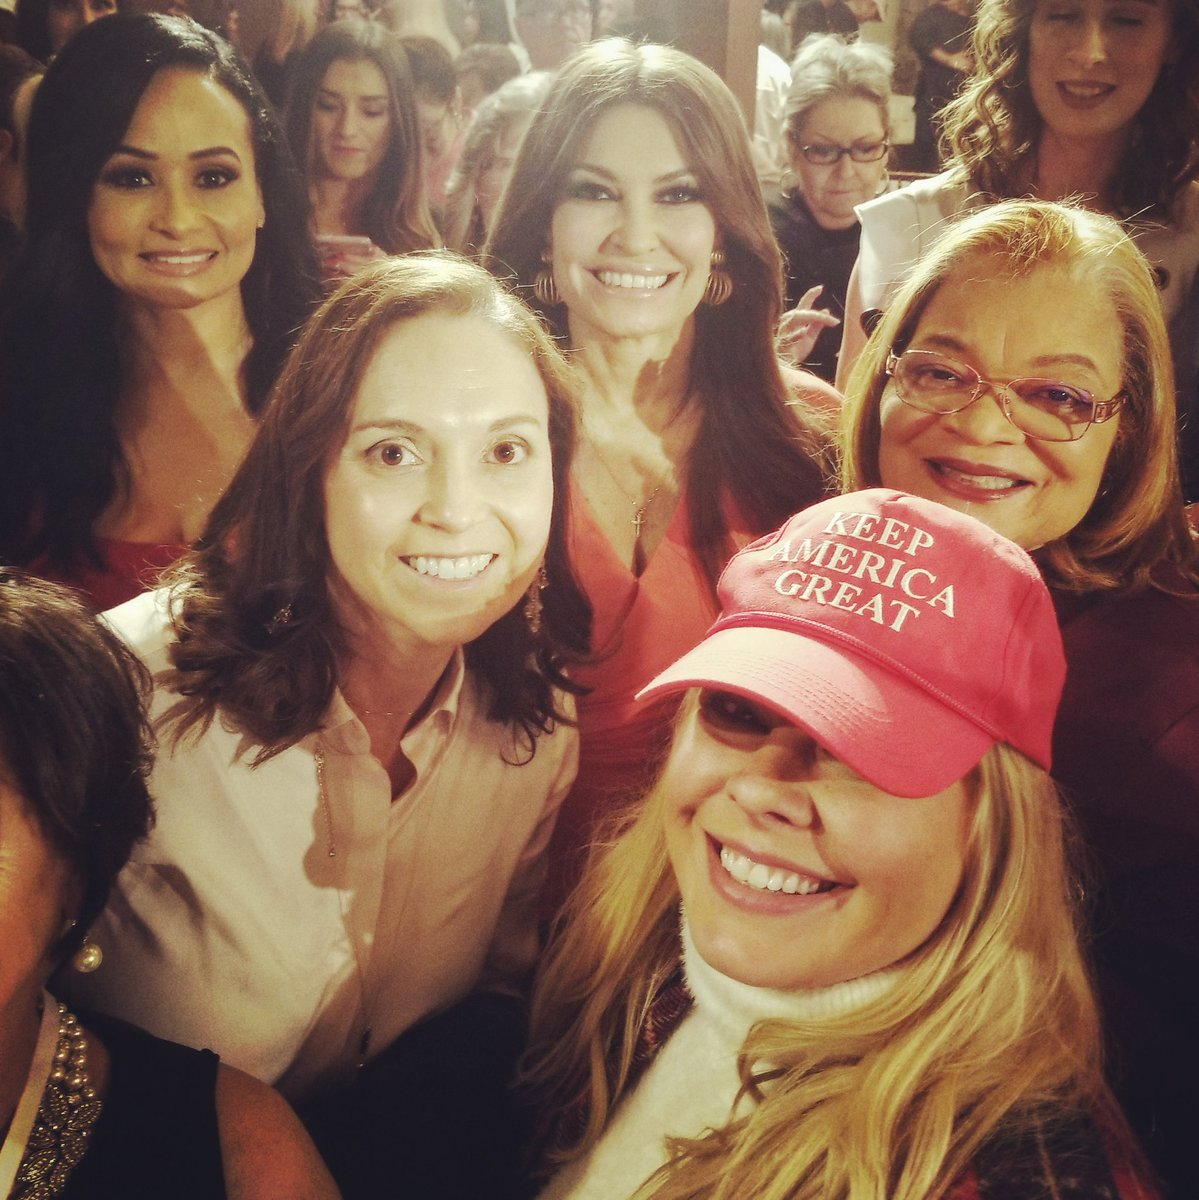 Had an amazing night at last nights @WomenforTrump  rally in #Atlanta . An honor to stand next to @AlvedaCKing  @kimguilfoyle  @KatrinaPierson . And I made a new Trump & 2A-supporting friend to my right. Black, brown and white women all turned out in support of #Trump2020 ! #KAG  #MAGA